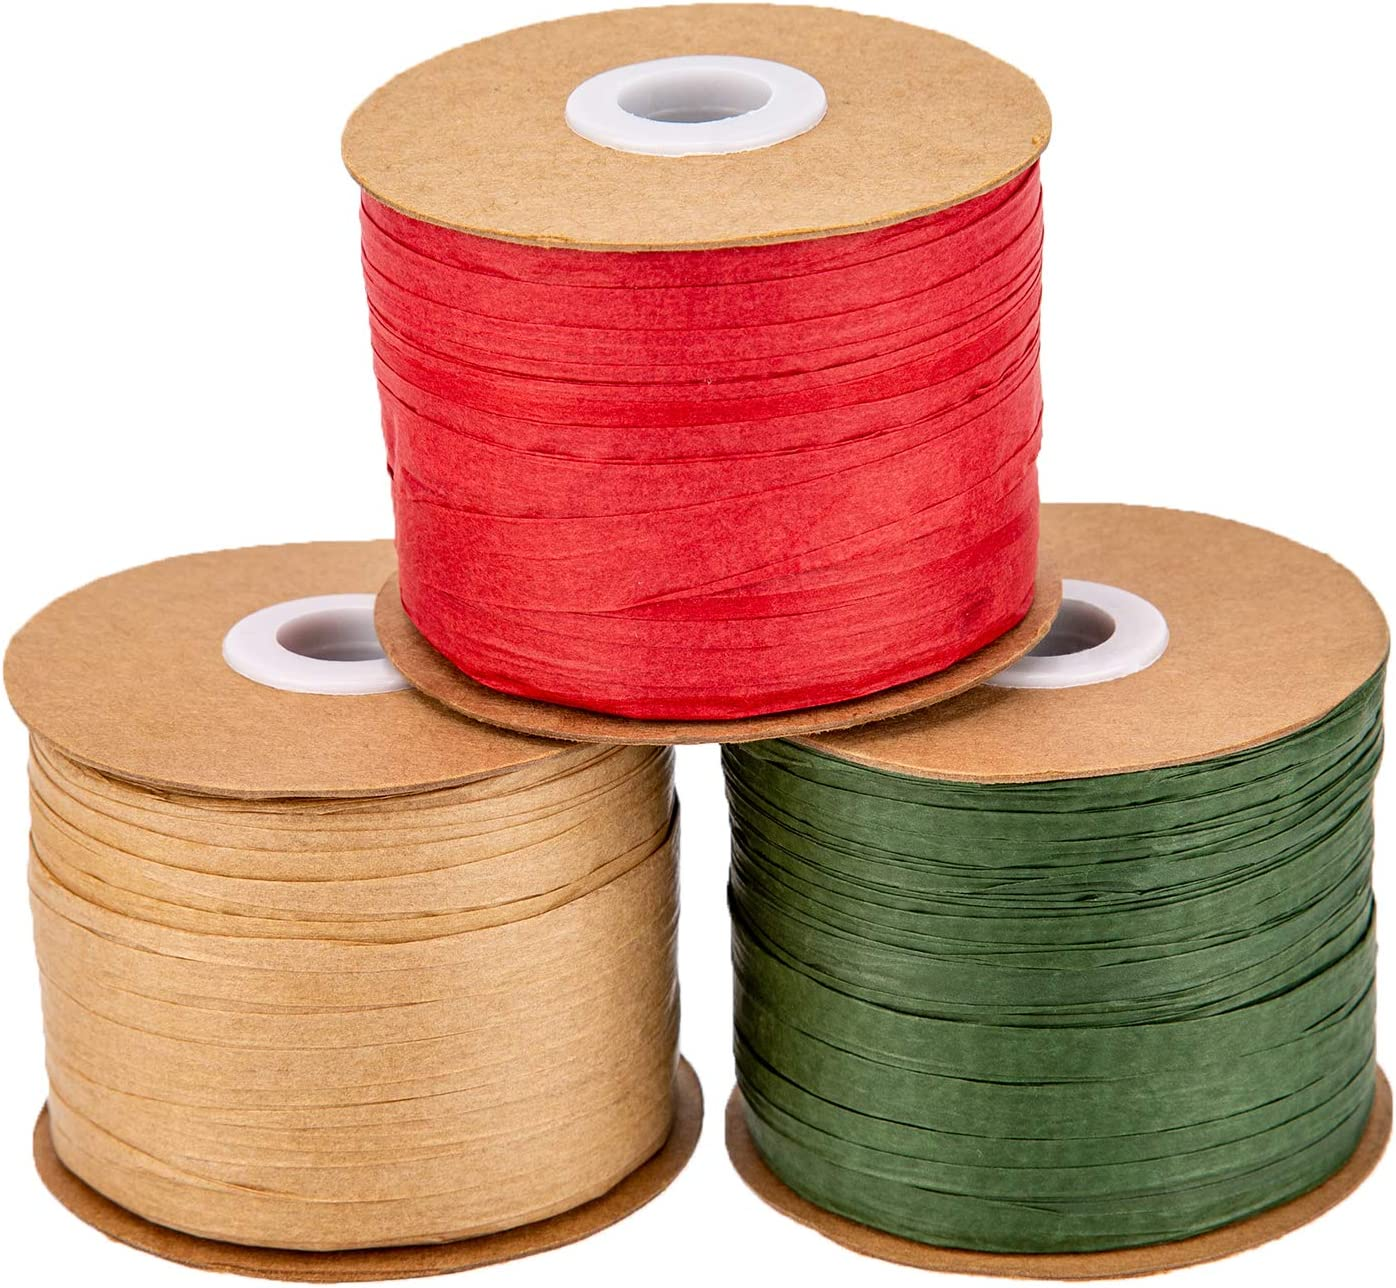 AIEX 3 Roll 984 feet Raffia Ribbon for Gift Wrapping 0.25inch Width Paper Twine for DIY Crafts Red//Green//Kraft 3 Color Raffia Paper Ribbon for Christmas Gift Packing